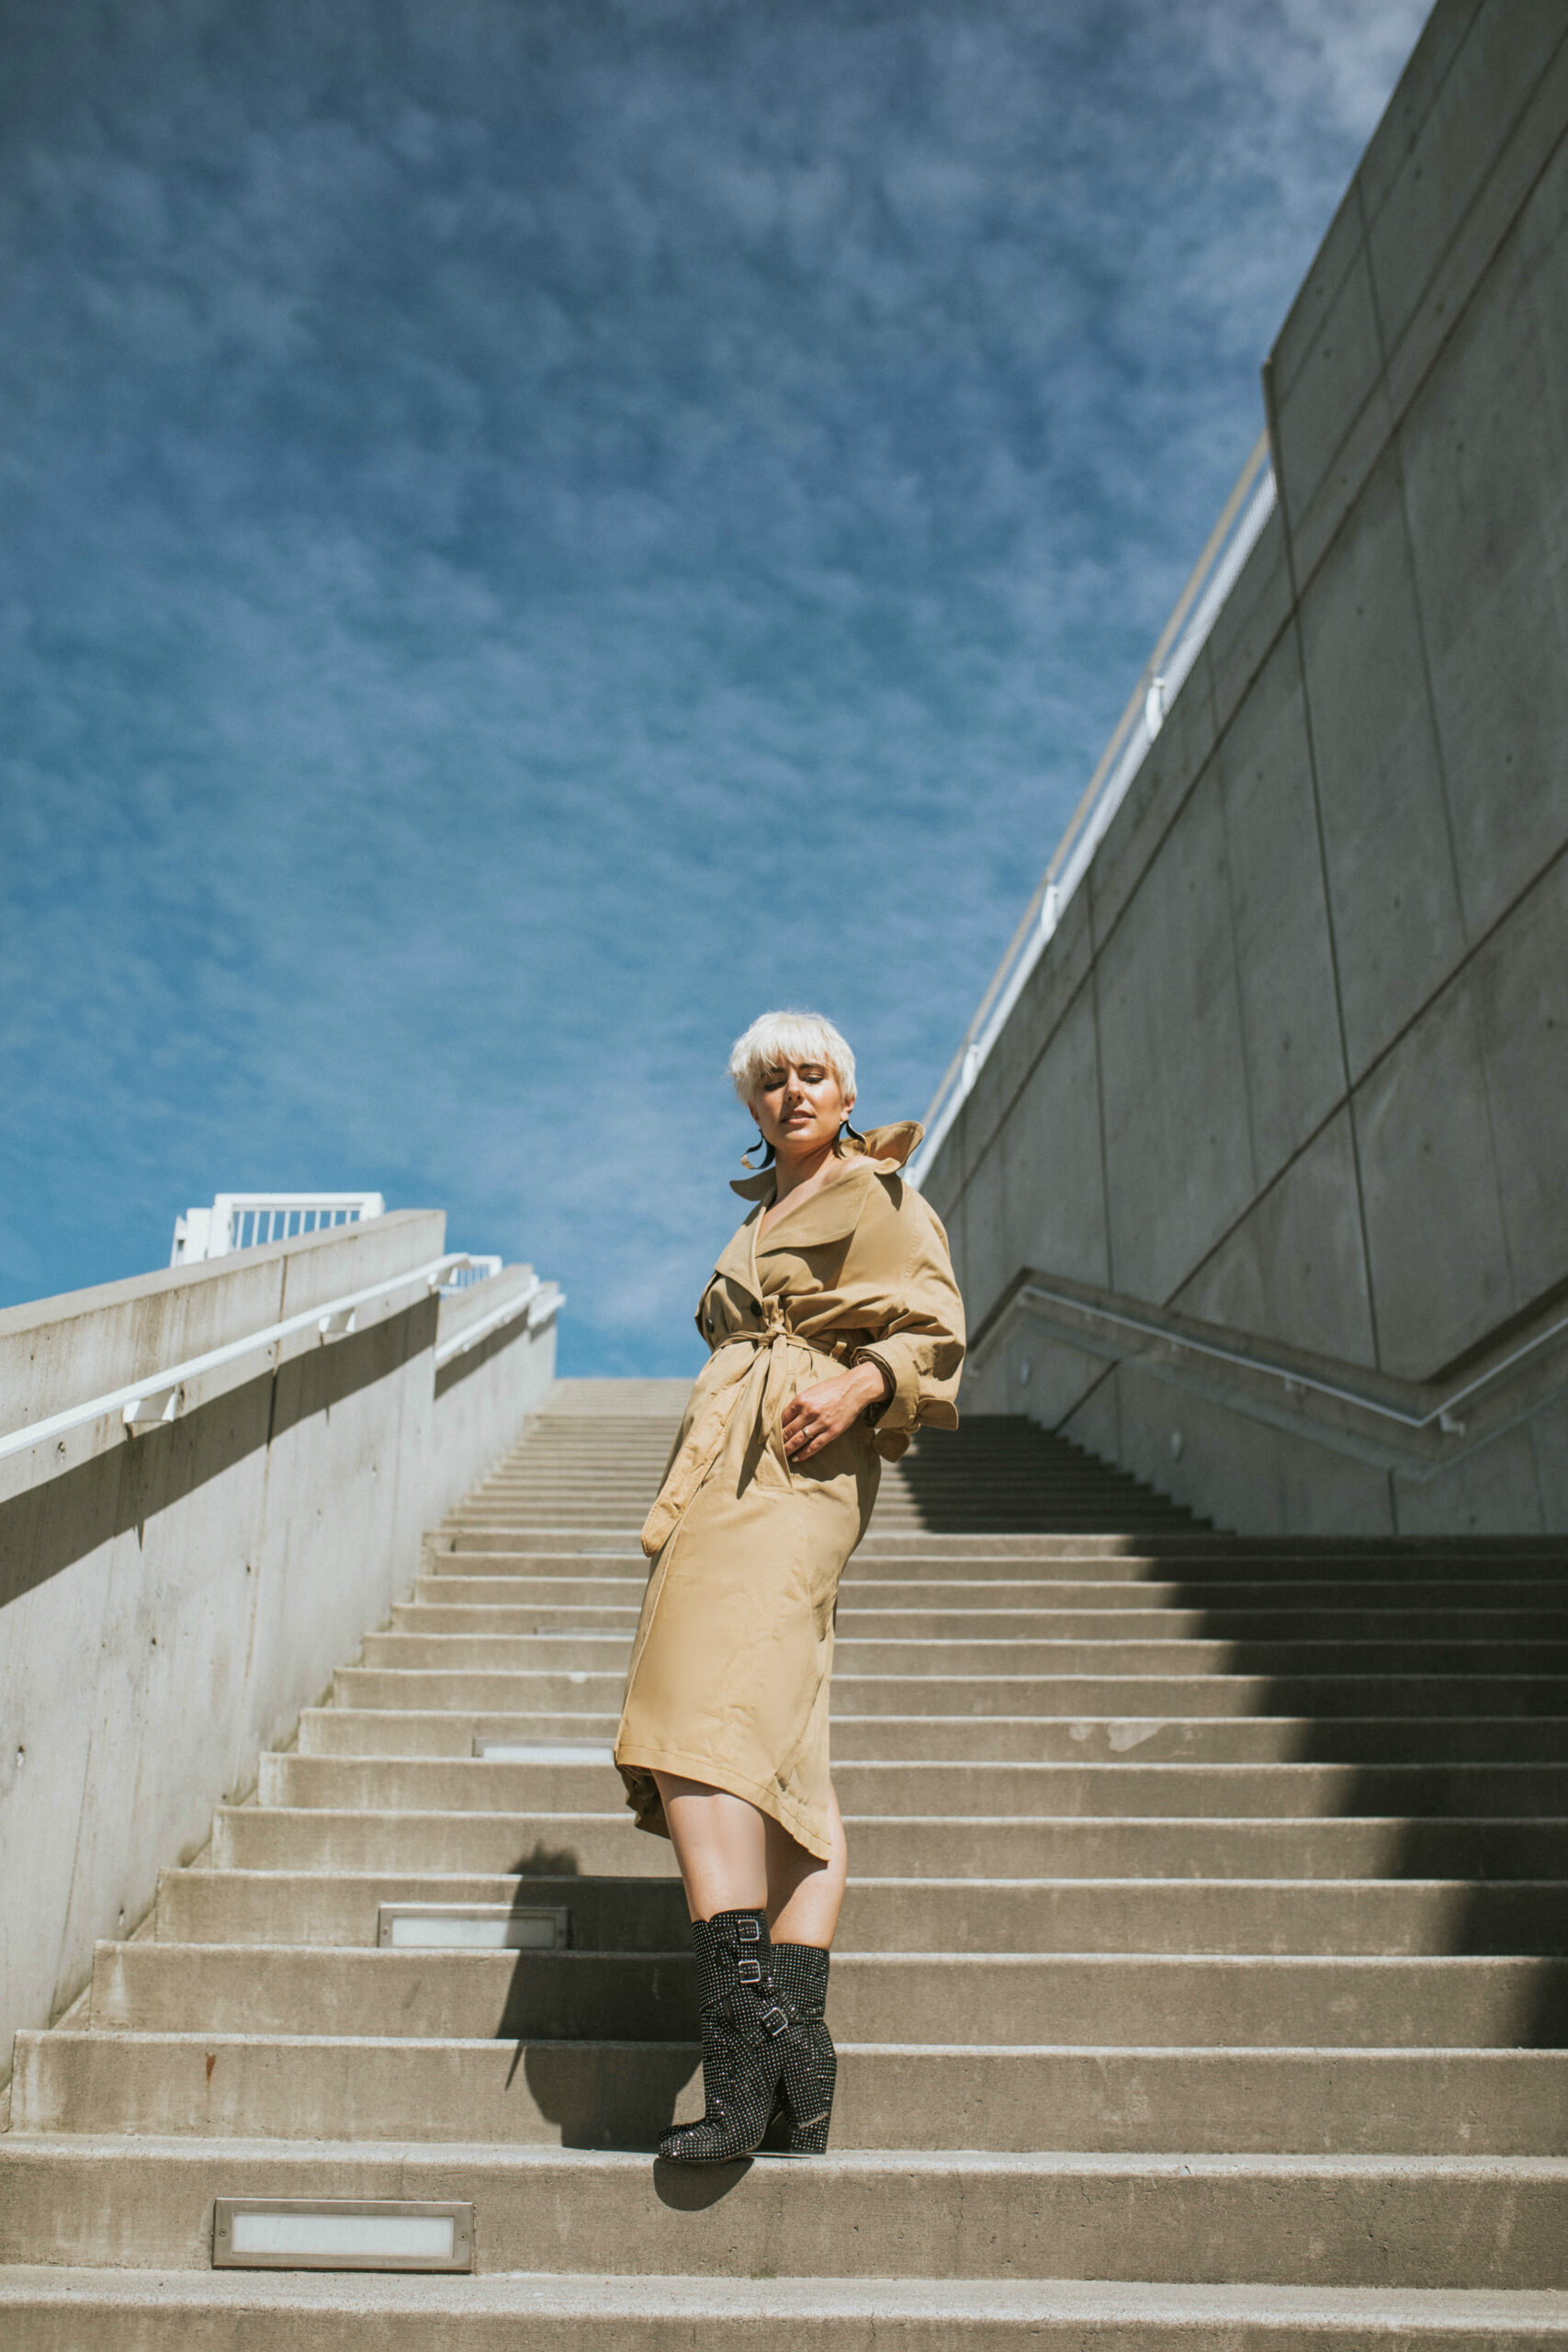 Can a Trench Coat be Worn as a Dress (Like Priyanka Chopra's at the 2017 Met Gala?) Let's Find Out - BloggerNotBillionaire.com